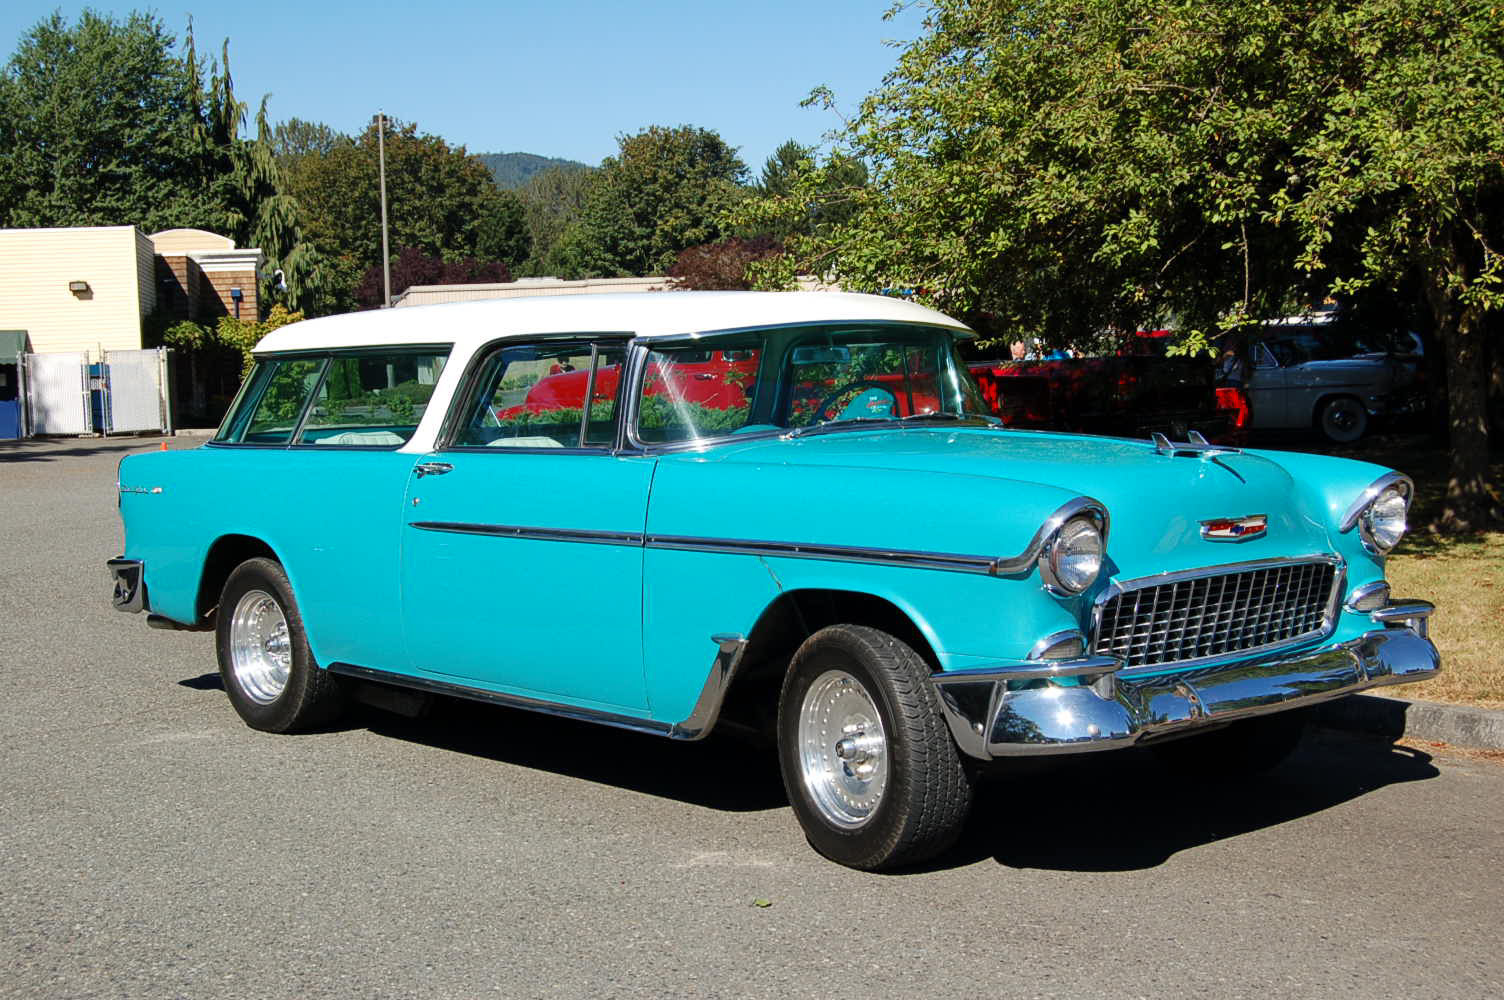 1955 Chevy Nomad Wagon Photos And Specs From 1957 Fresh Stock Skyline Blue 588 Paint Color On Chevrolet Station